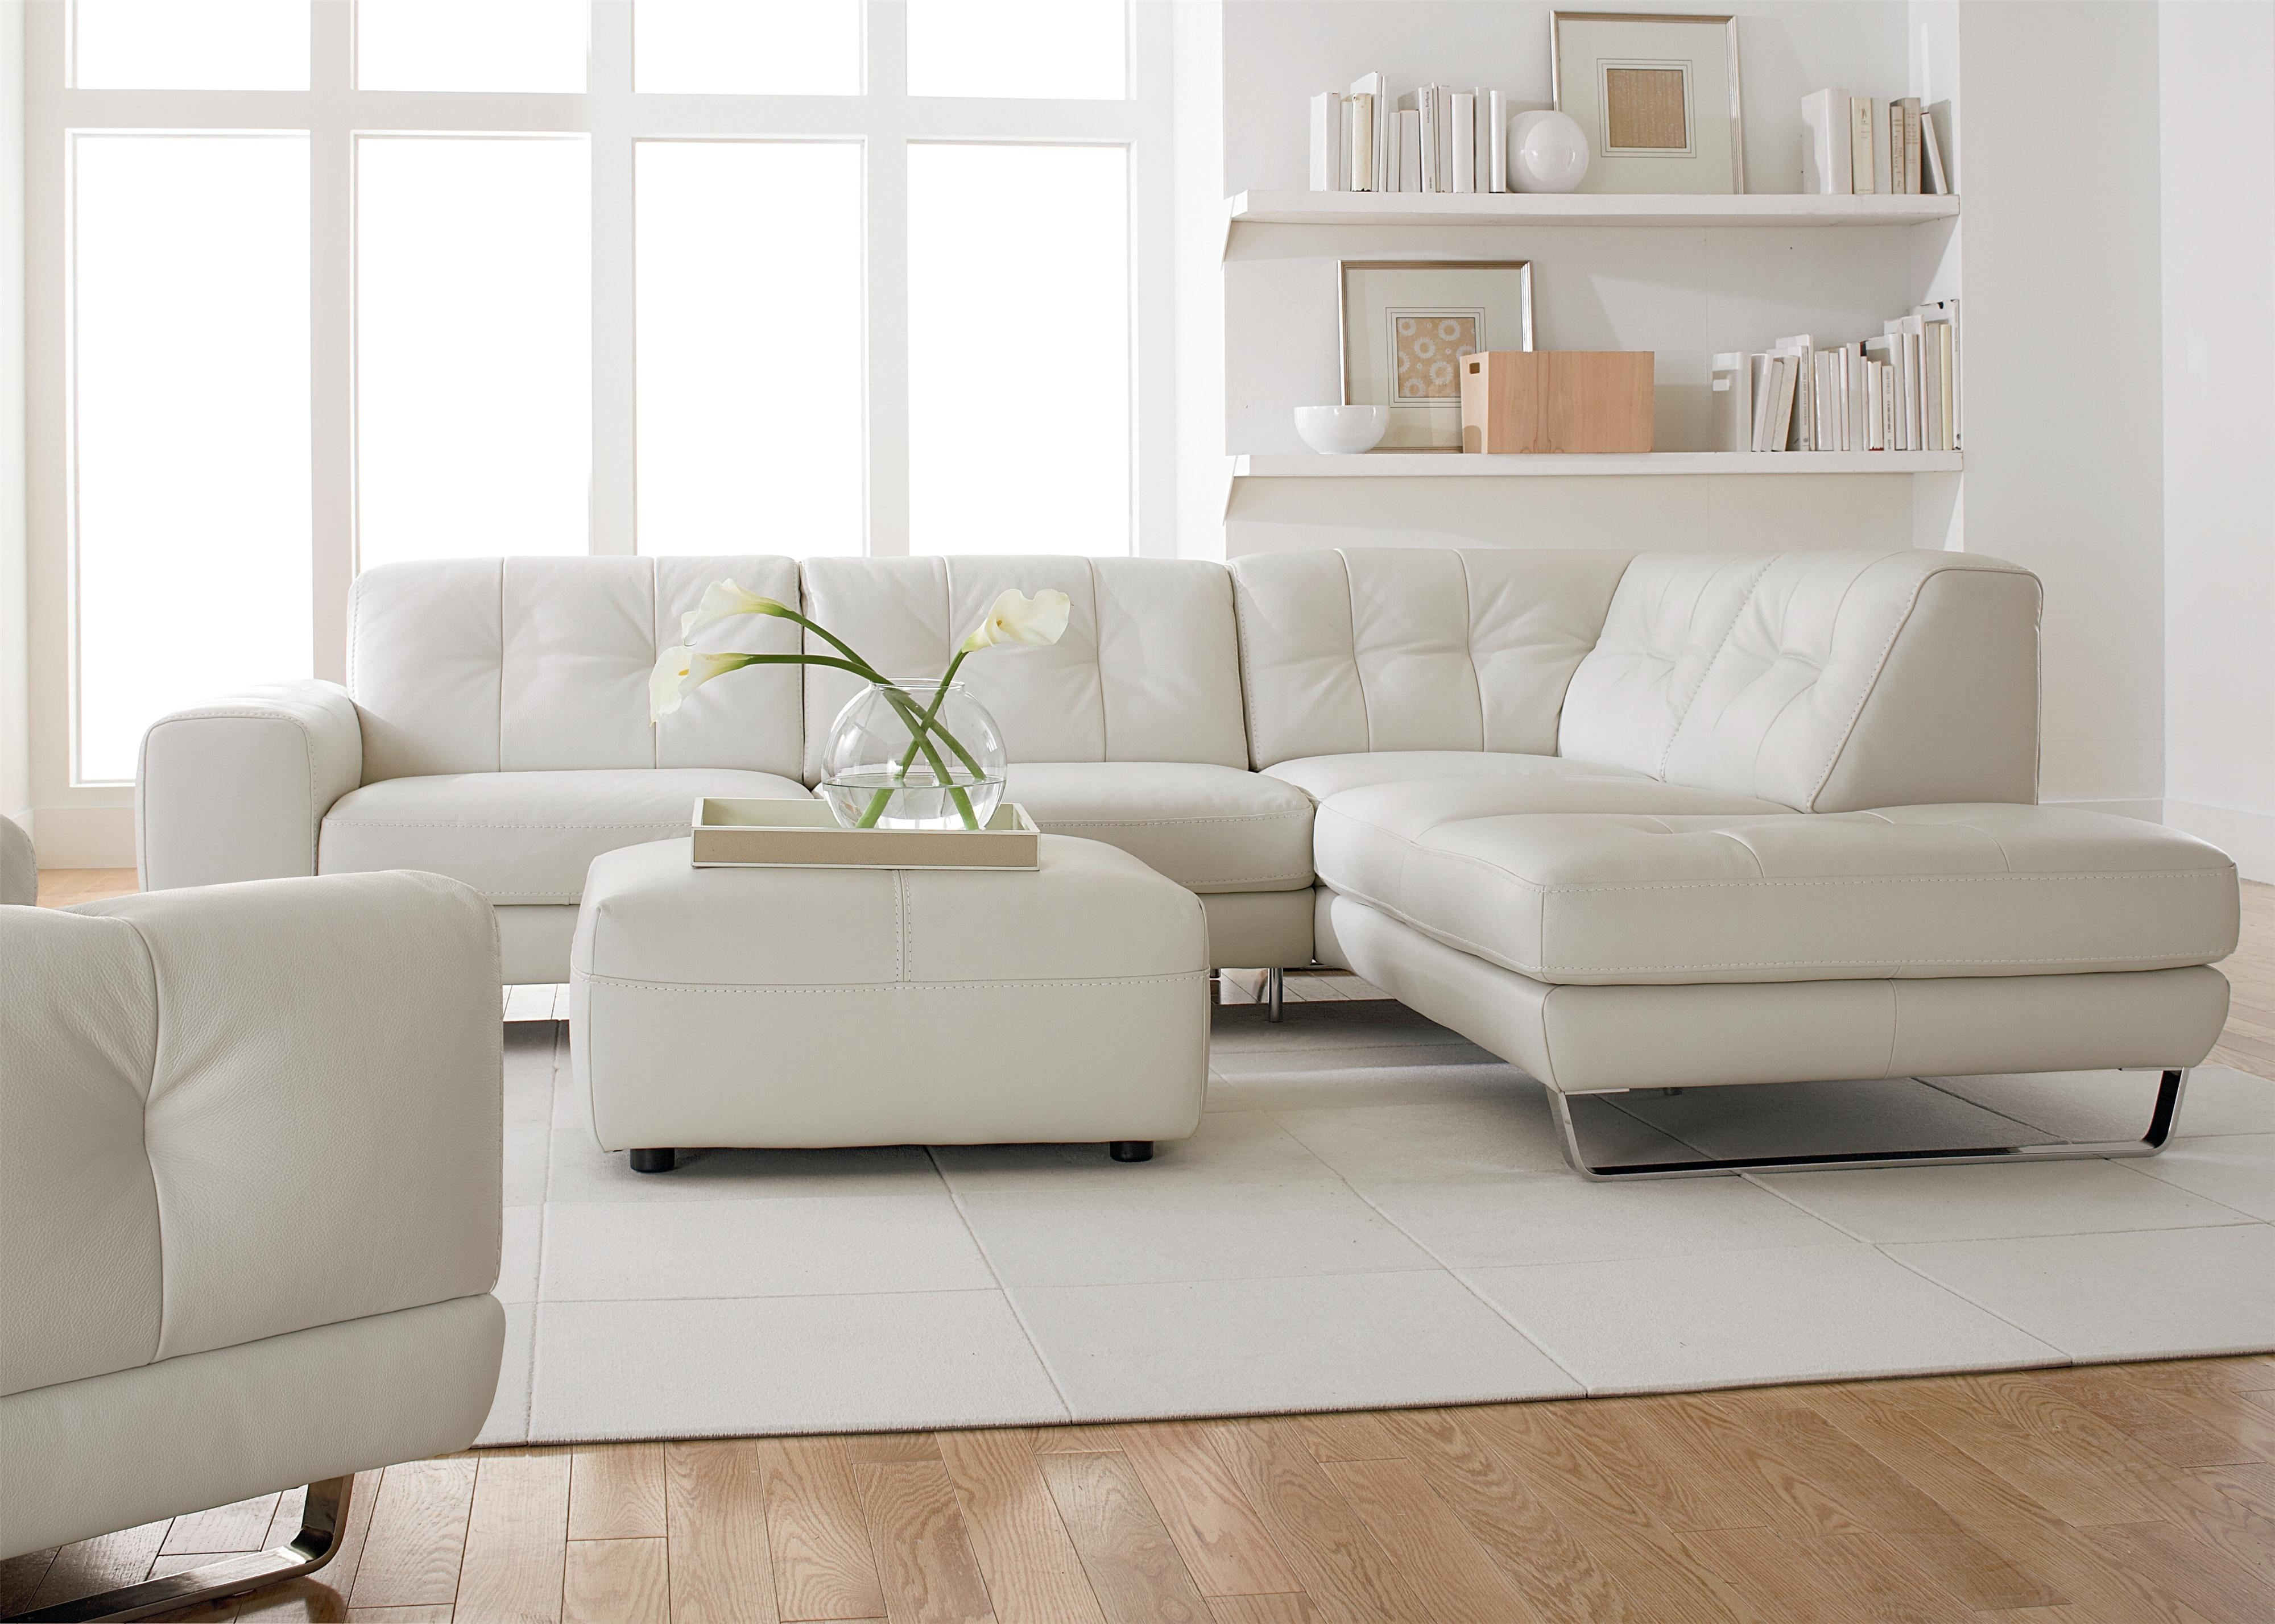 Simple Modern Minimalist Living Room Decoration With White Leather Within Small Sectional Sofas With Chaise And Ottoman (View 10 of 15)